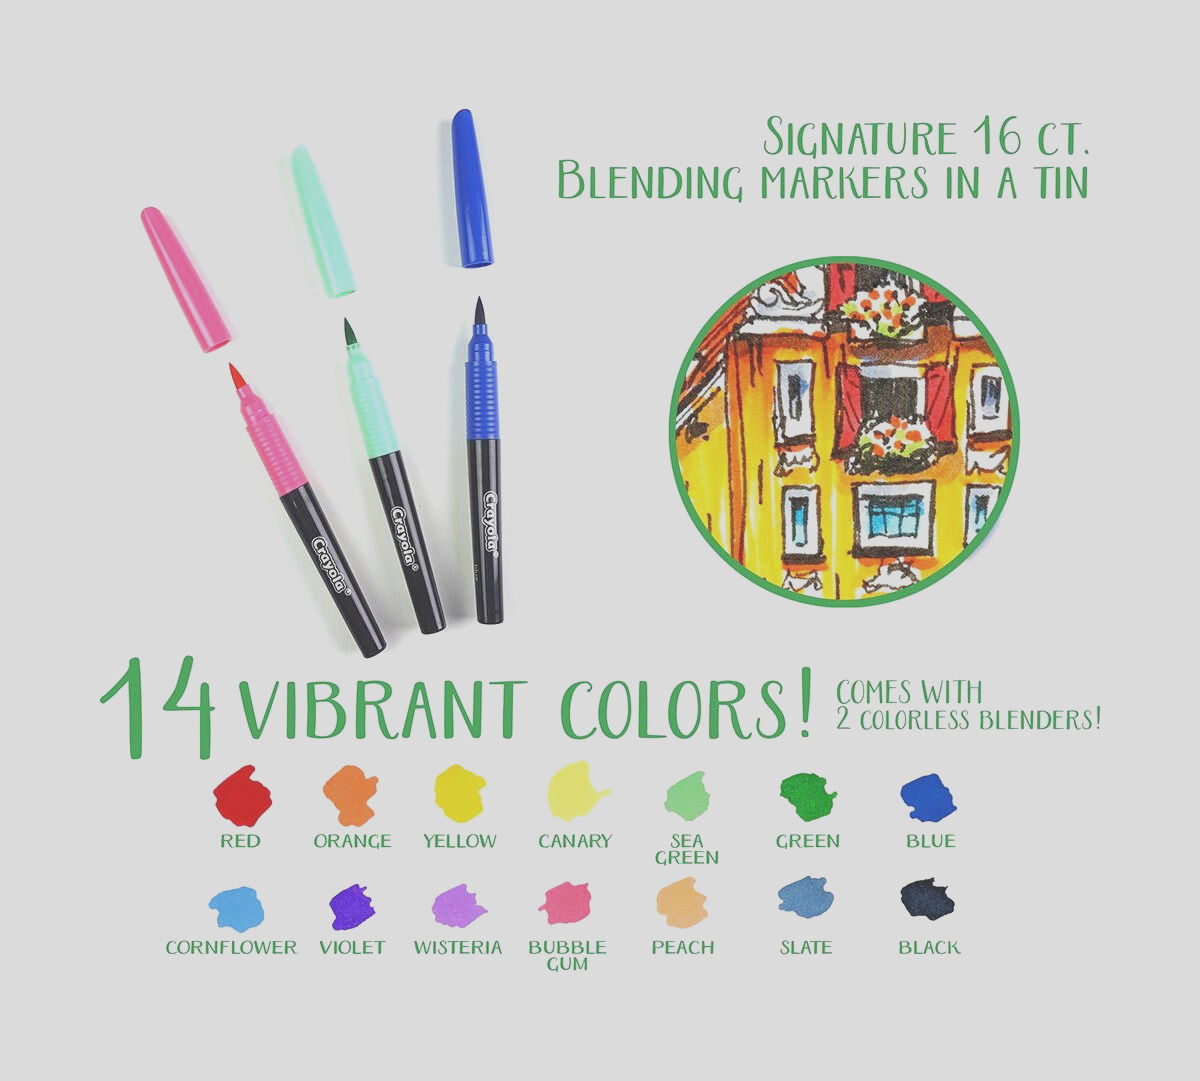 signature 16 ct blending markers in a tin